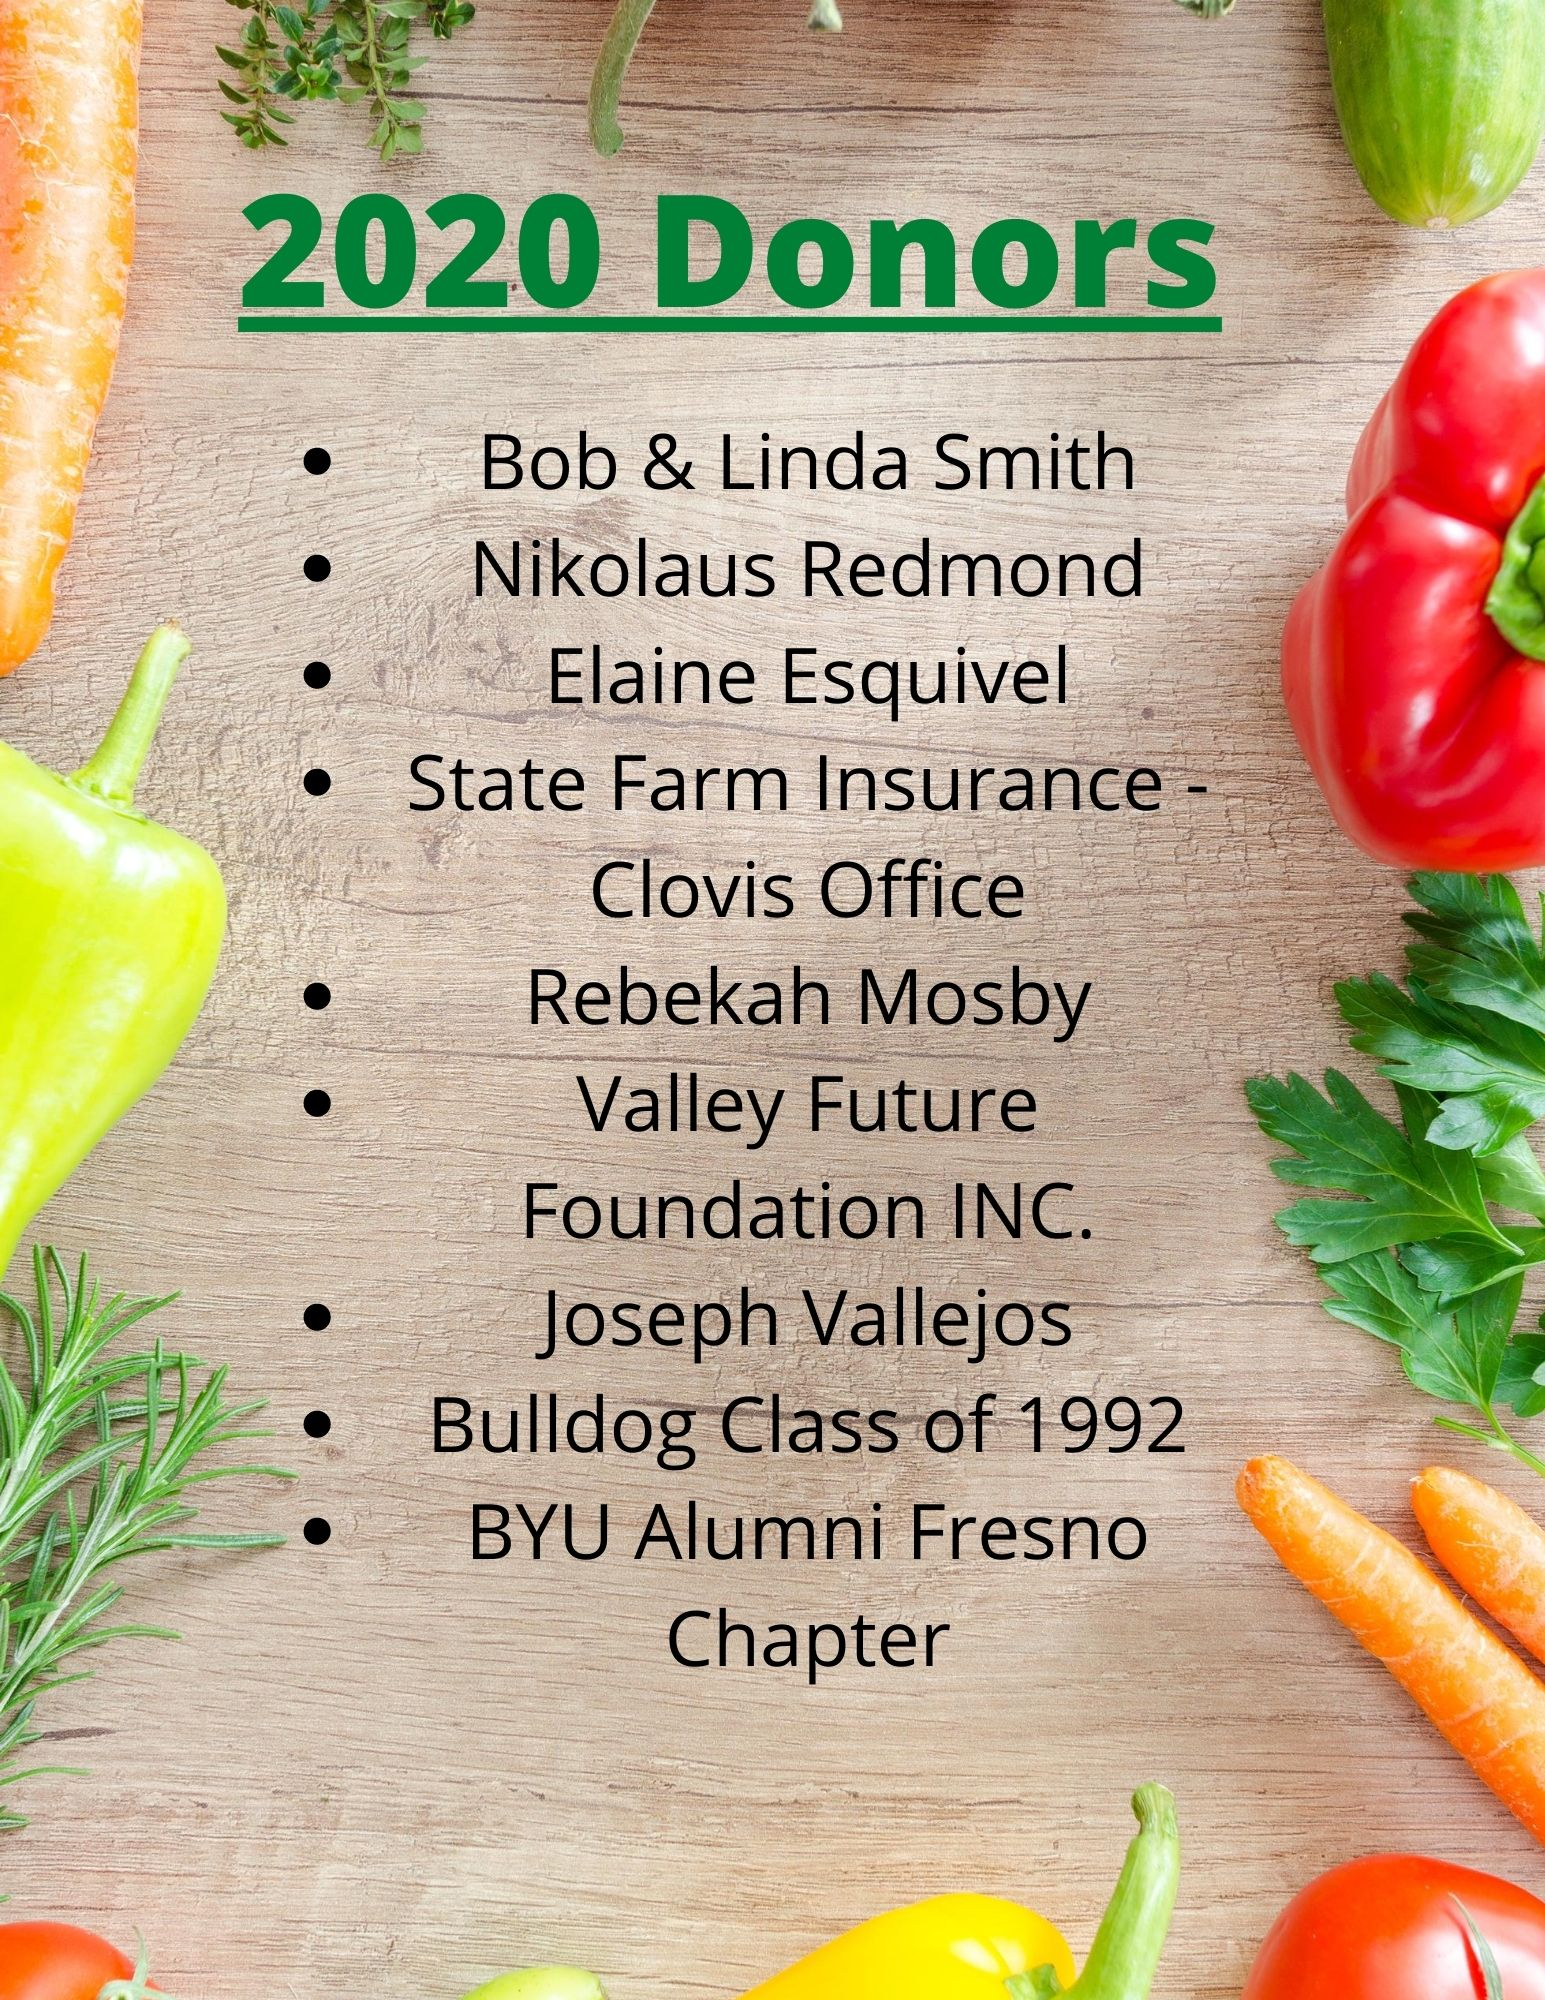 2020-donors-16